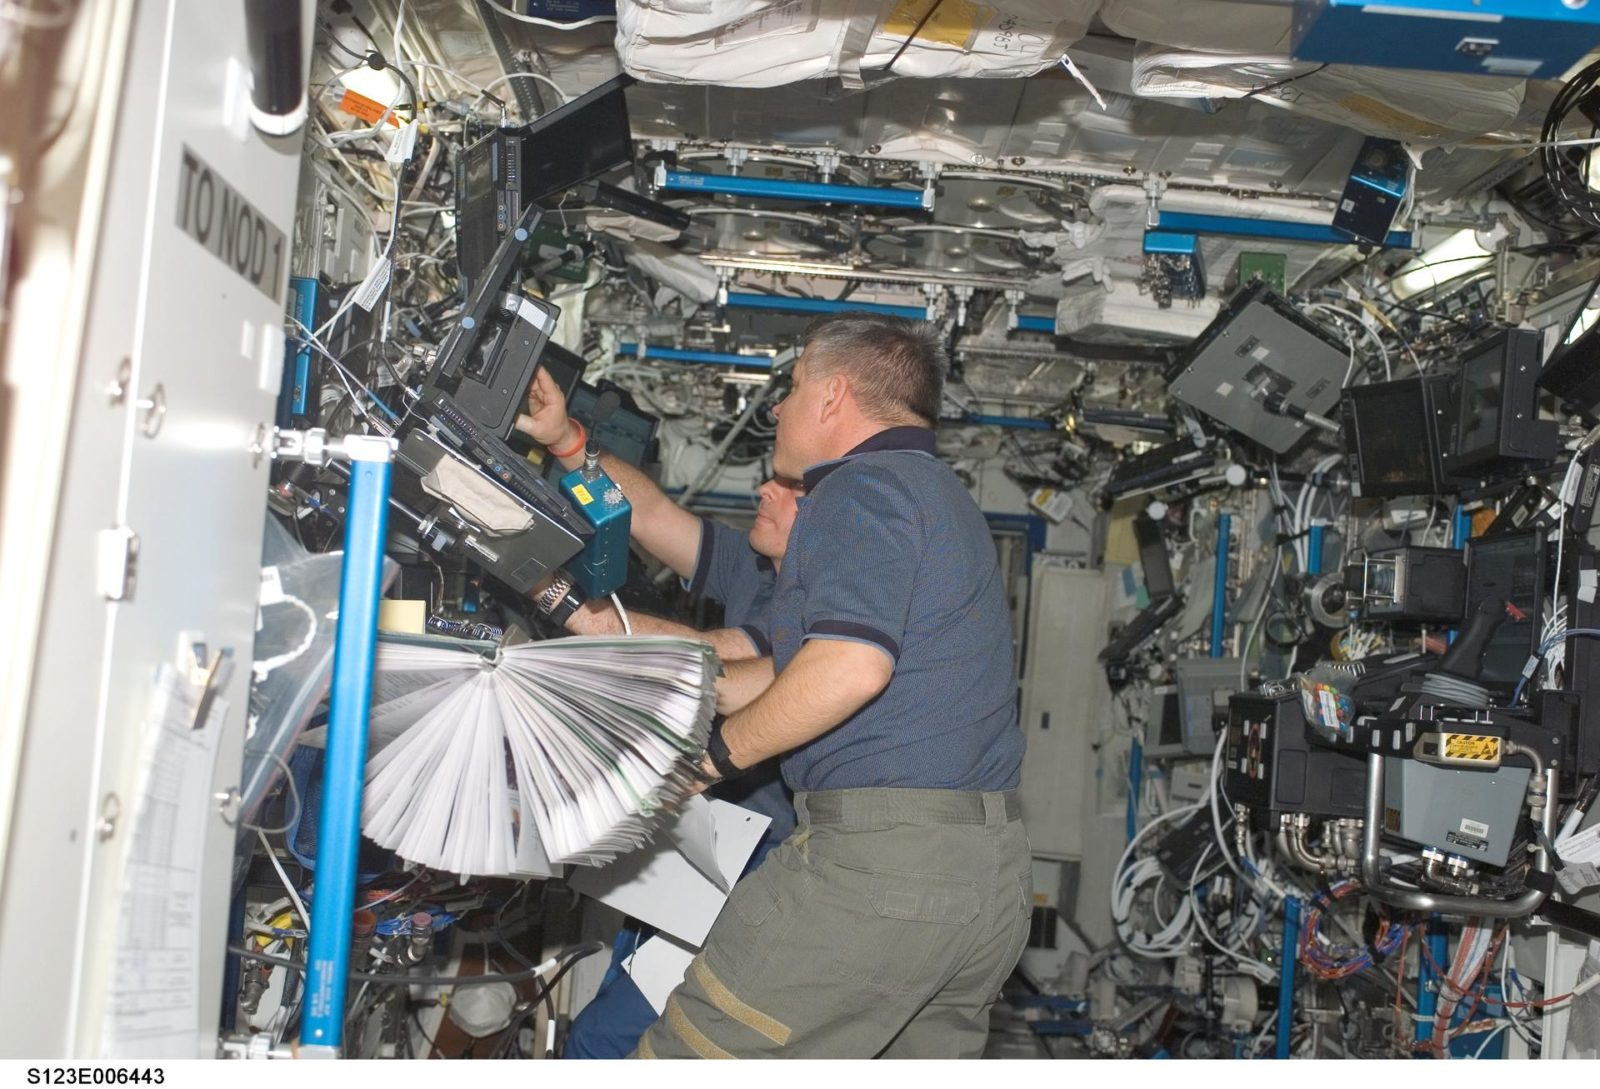 Johnson works the controls of Robotic Canadarm2 in the U.S. Laboratory during Joint Operations